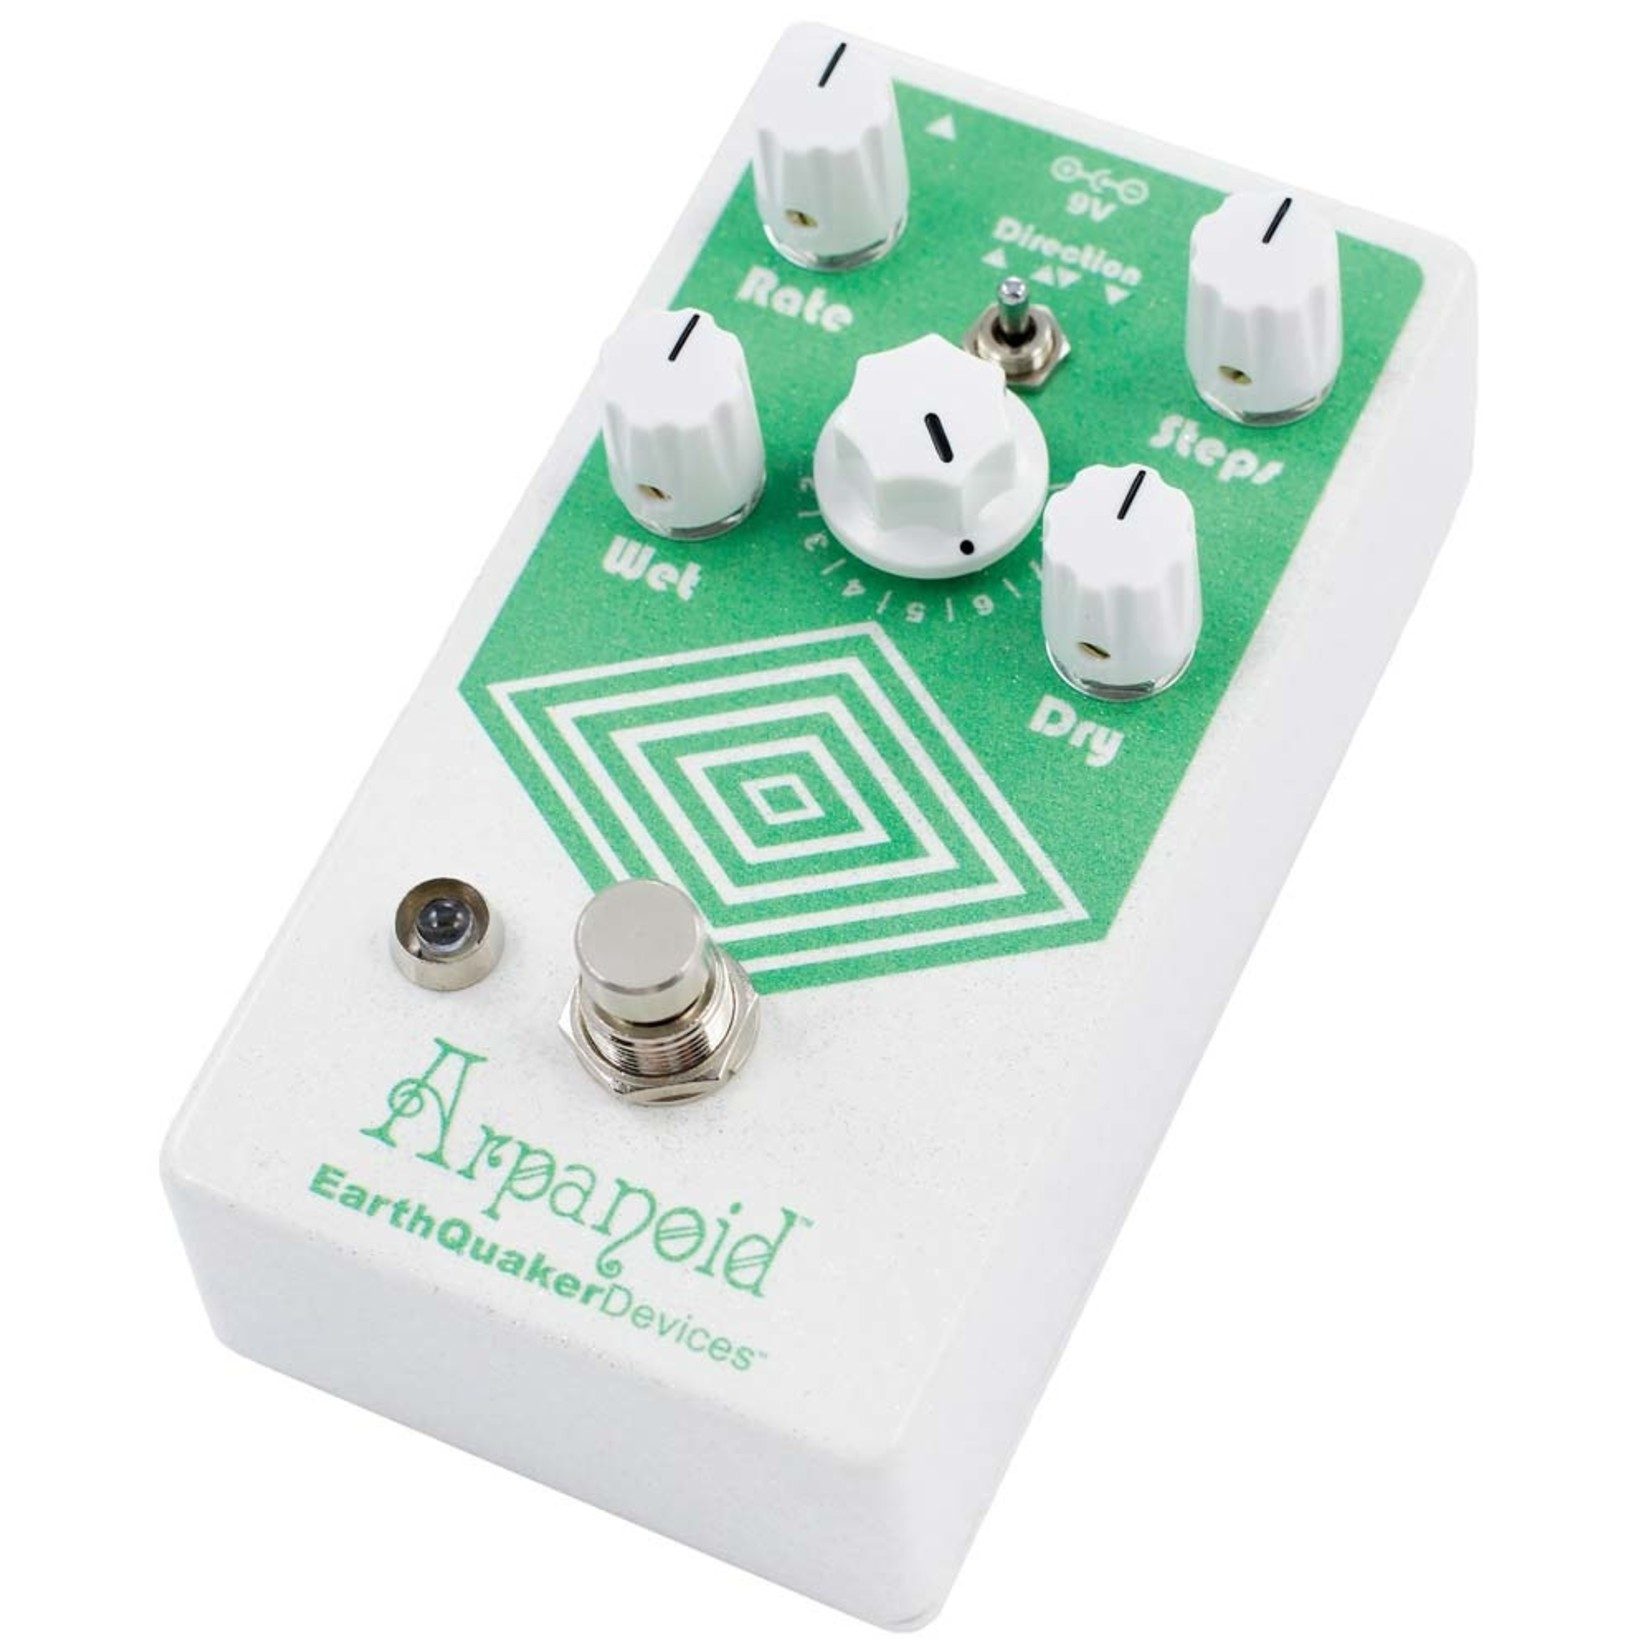 Earthquaker Devices EarthQuaker Devices Arpanoid Polyphonic Pitch Arpeggiator V2